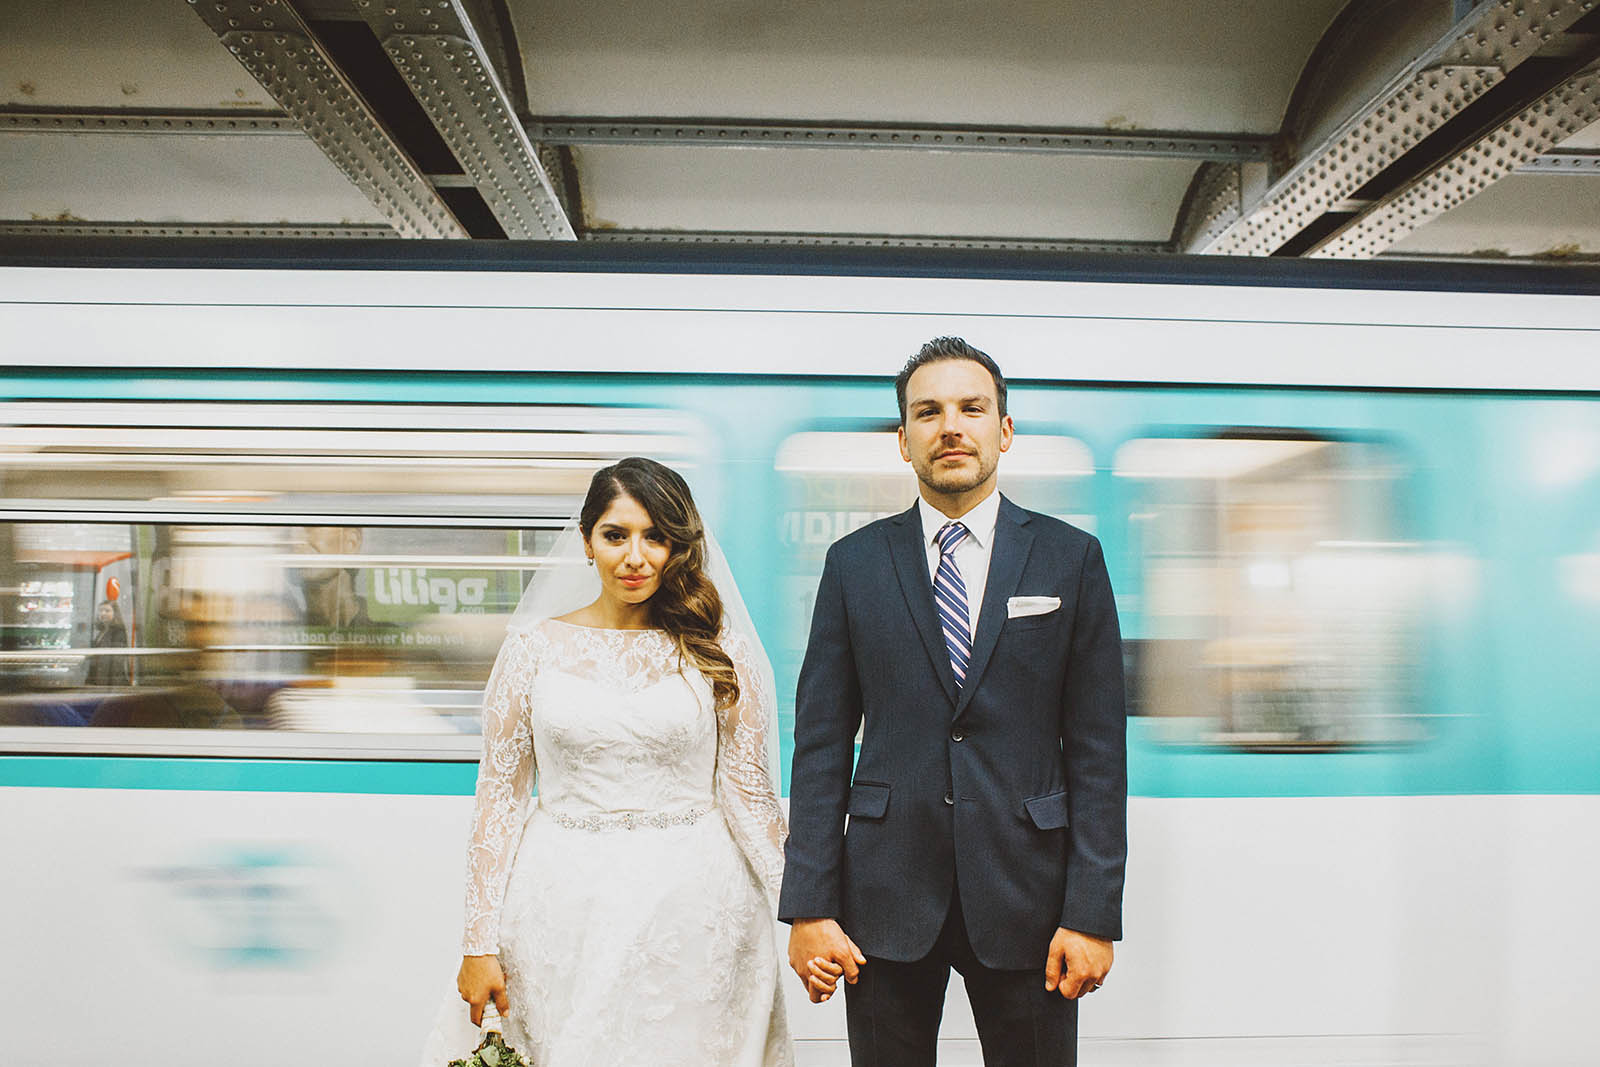 Bride and Groom portrait in front of a Metro train | Springtime Paris Elopement at Parc des Buttes Chaumont